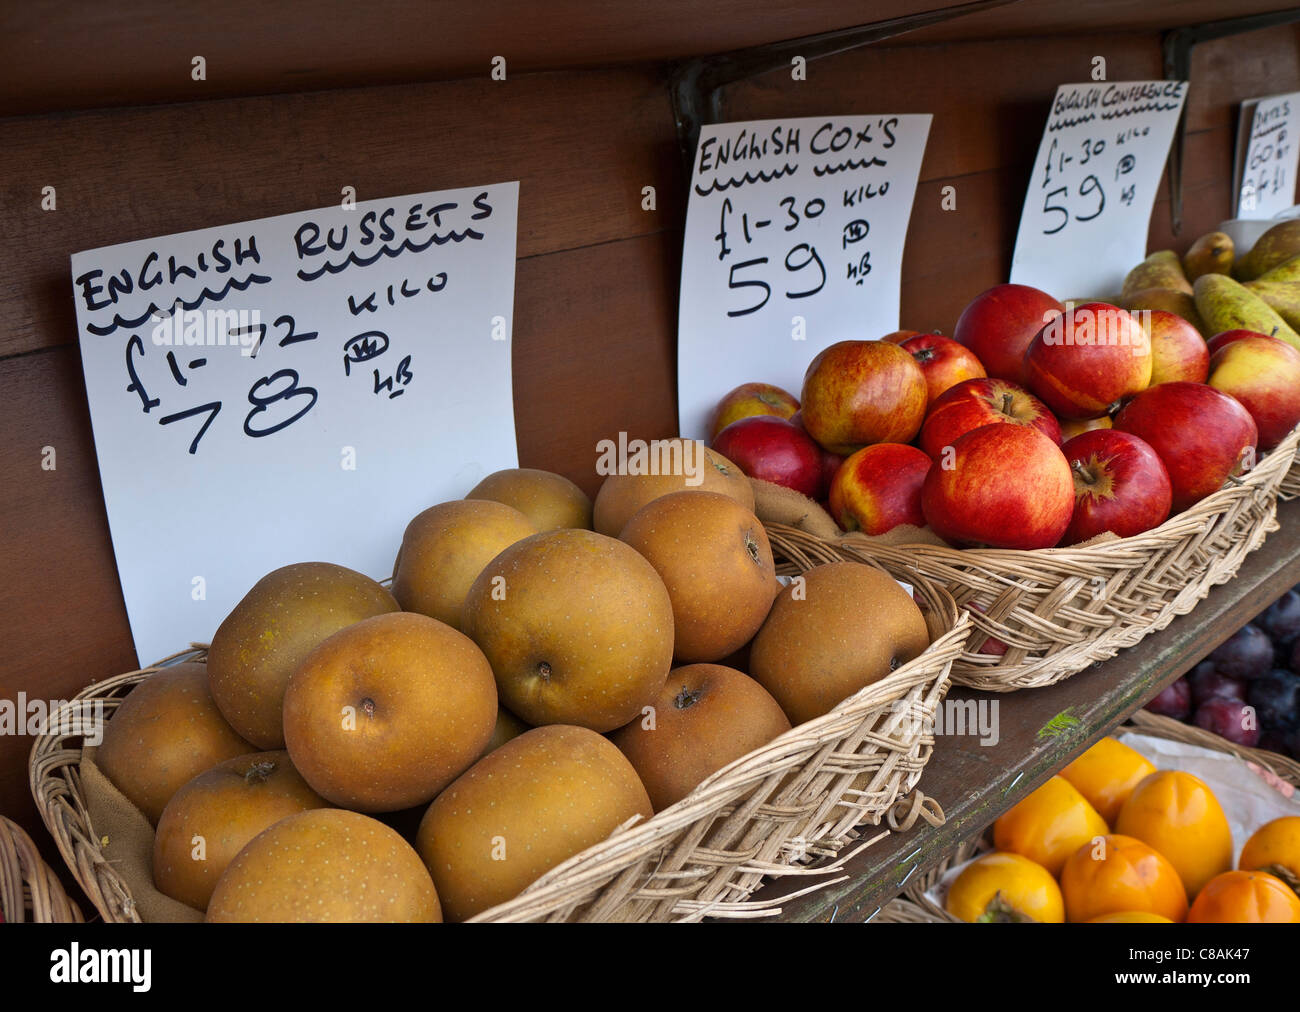 Village greengrocer display of local English apples including  baskets of Russets and Cox's - Stock Image